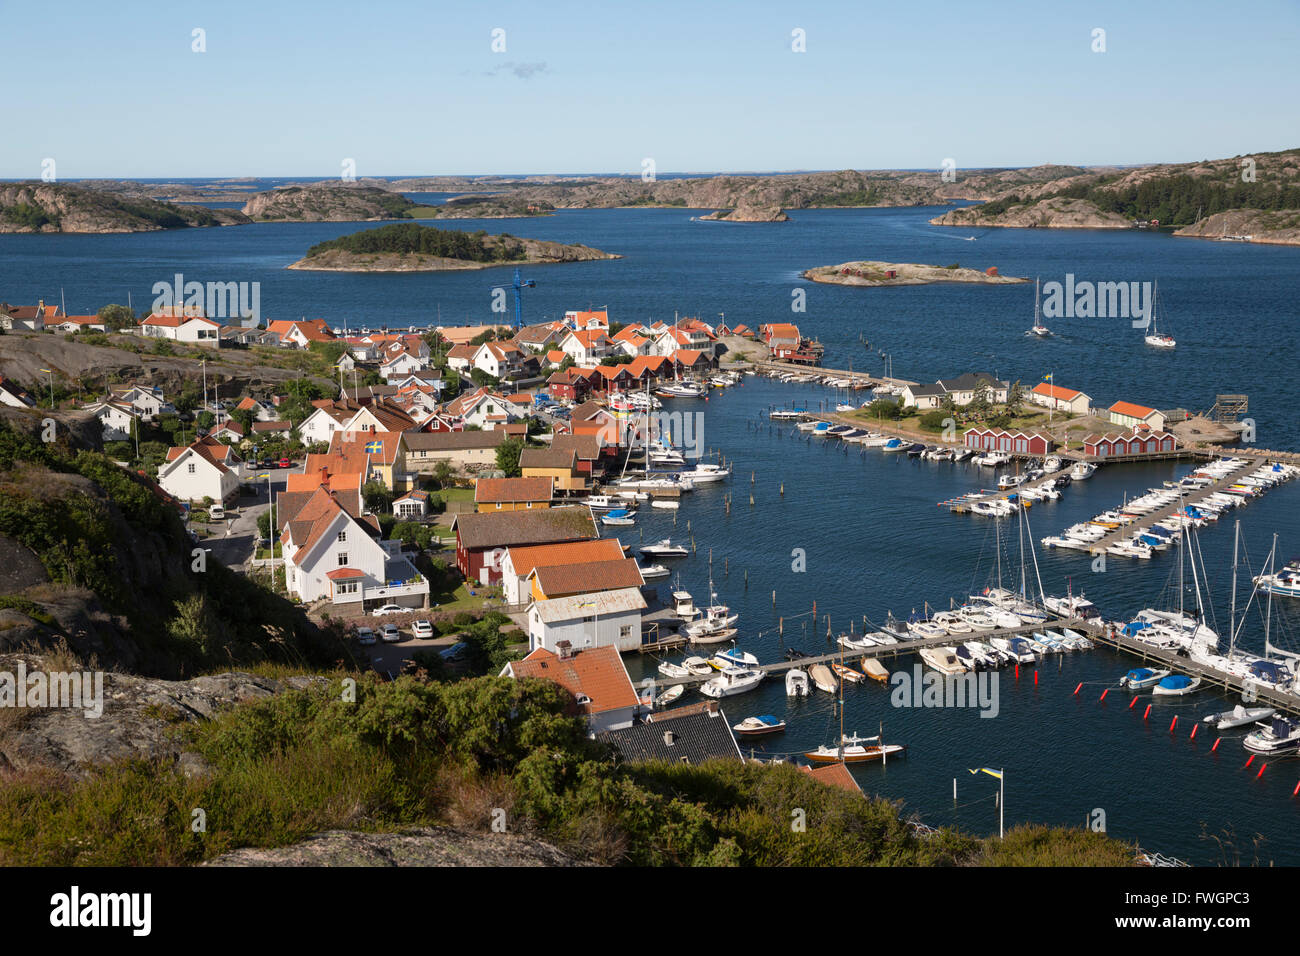 View over harbour and town from Vetteberget cliff, Fjallbacka, Bohuslan Coast, Southwest Sweden, Sweden, Scandinavia, - Stock Image